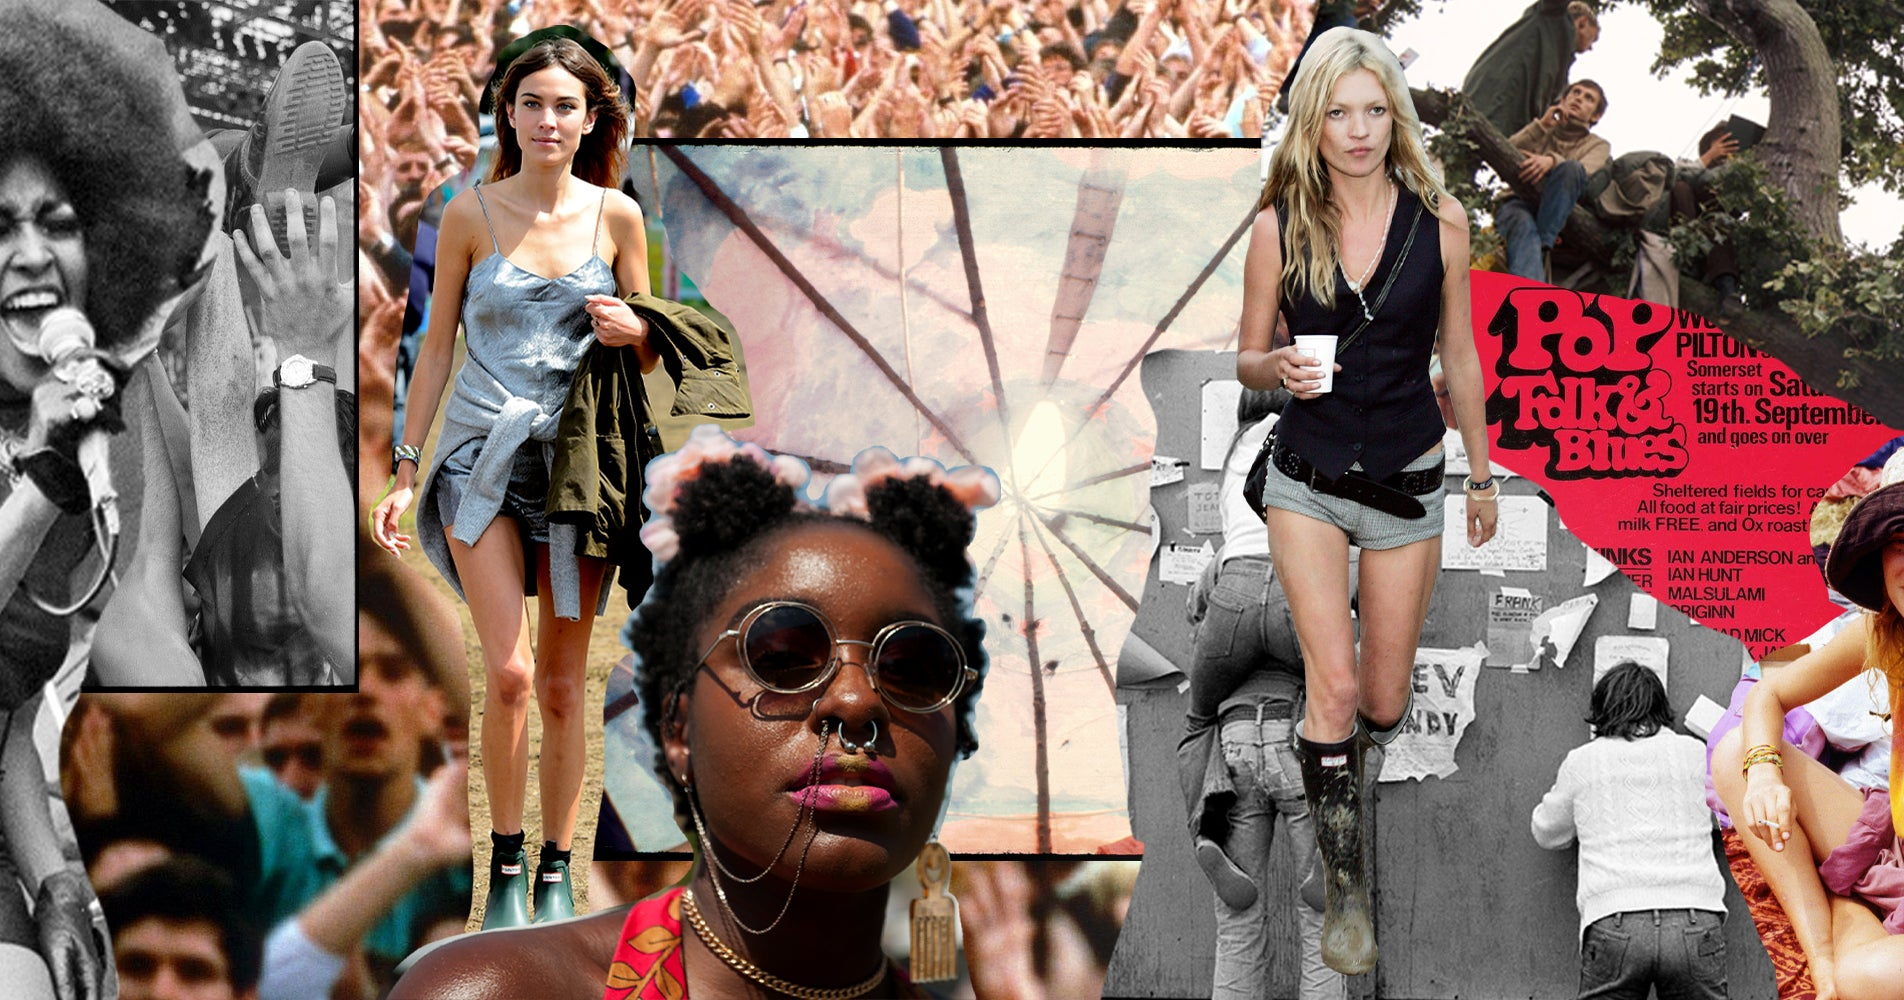 A Look Back At Each Decade Of Festival Fashion, From The '60s To Today